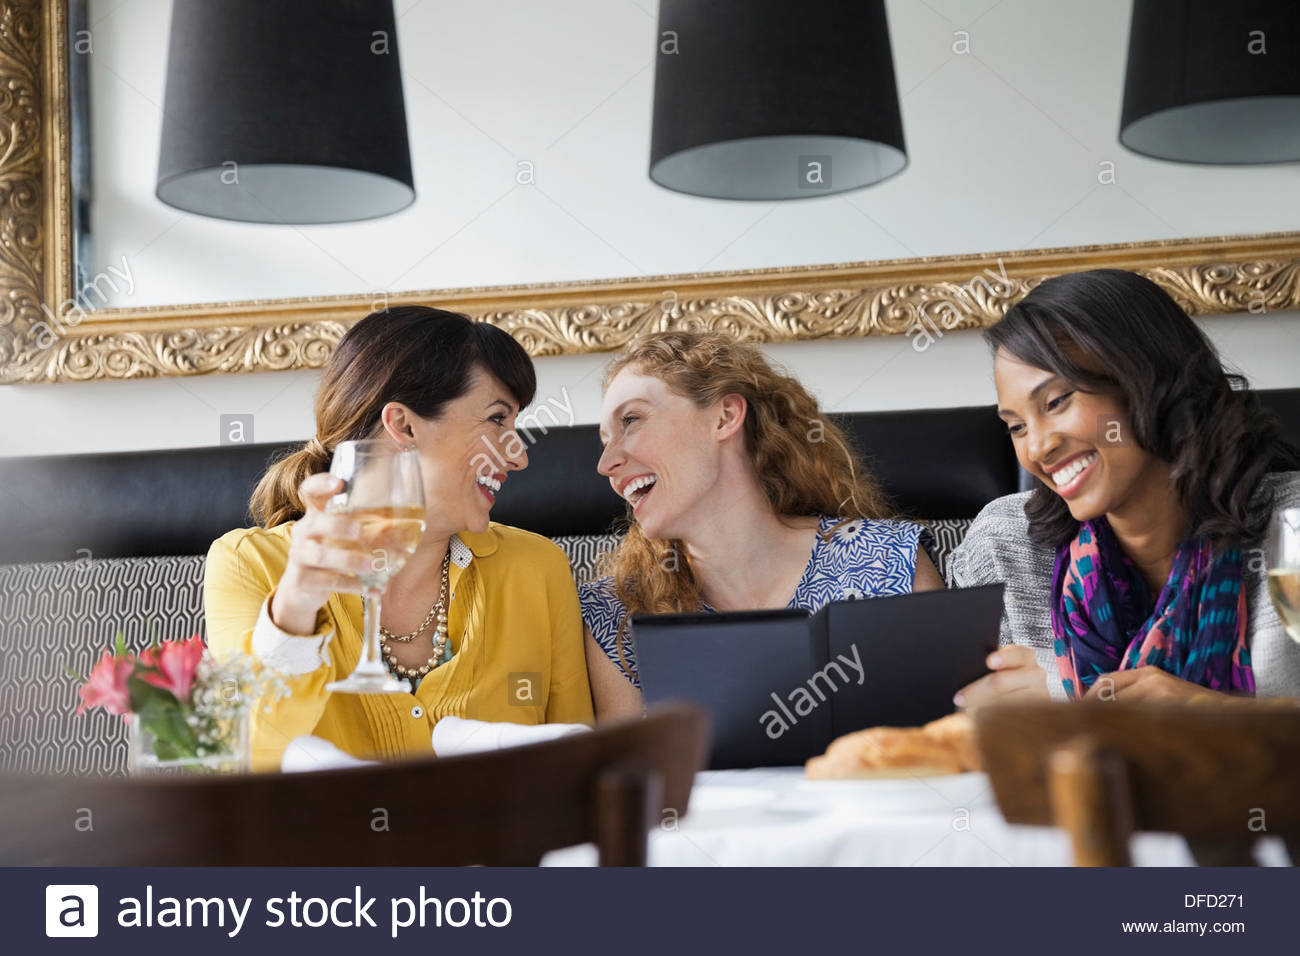 Cheerful female friends dining out - Stock Image